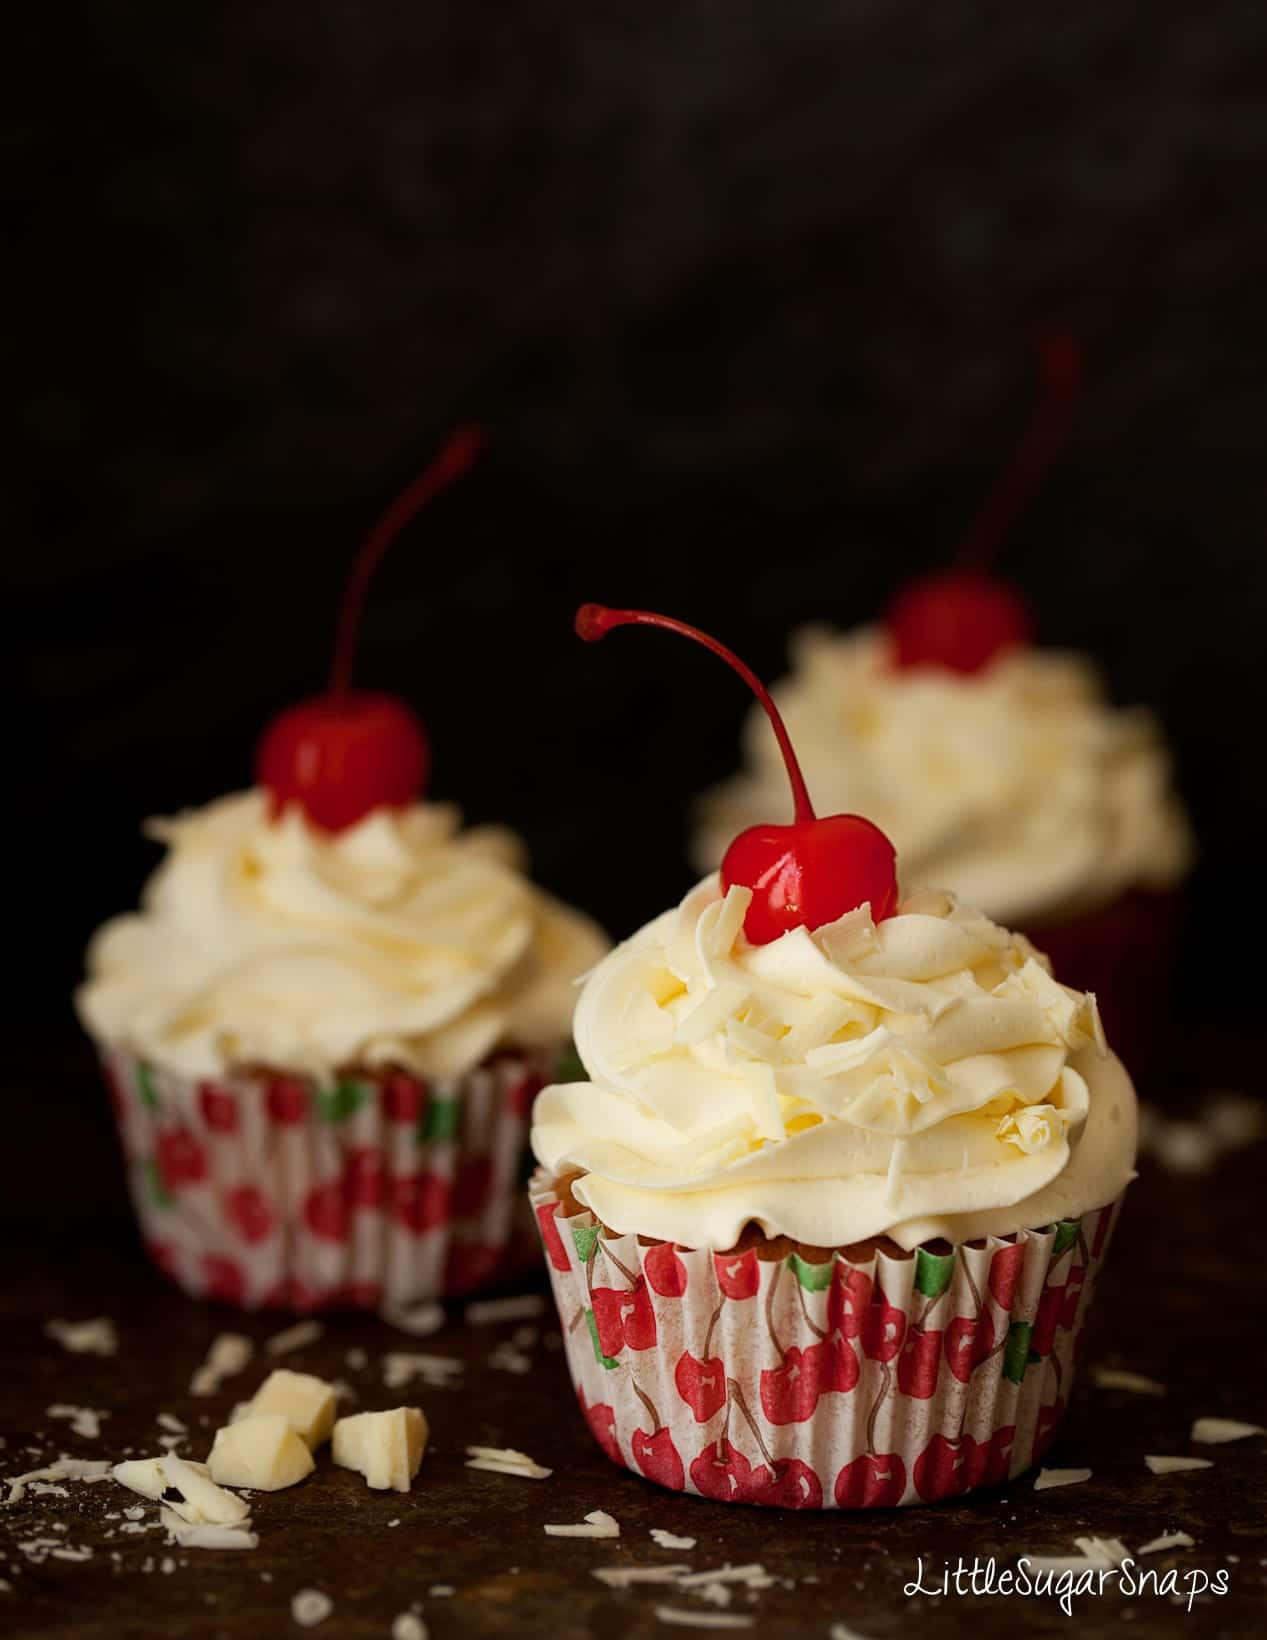 Cherry Cupcakes with buttercream and white chocolate flakes.